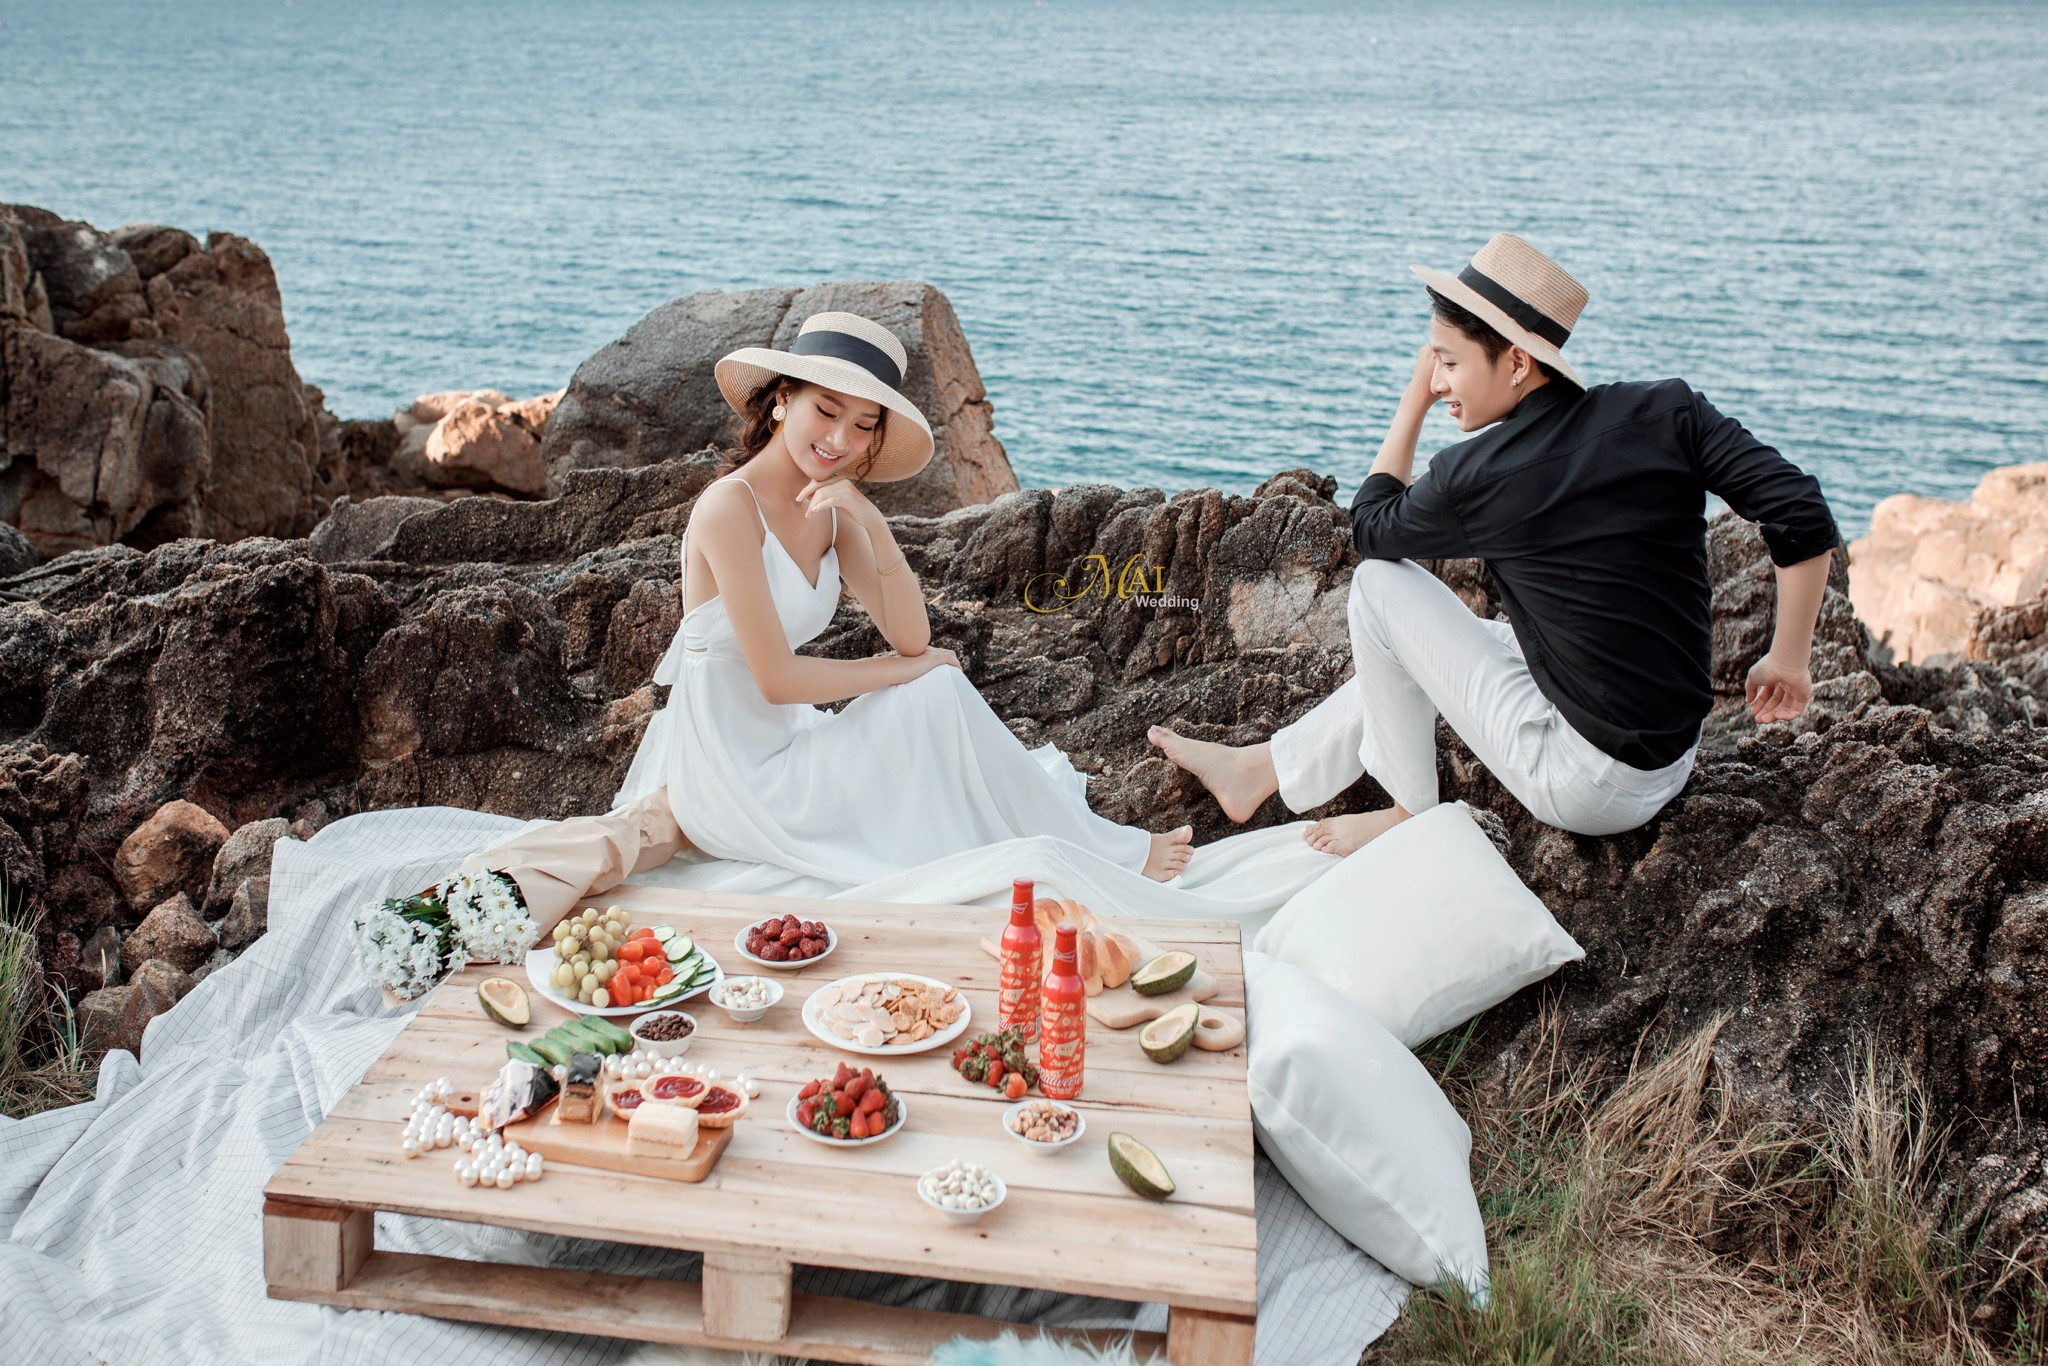 Concept Picnic By The Sea - 106103468 1422253261300874 6766535046121450049 o 2